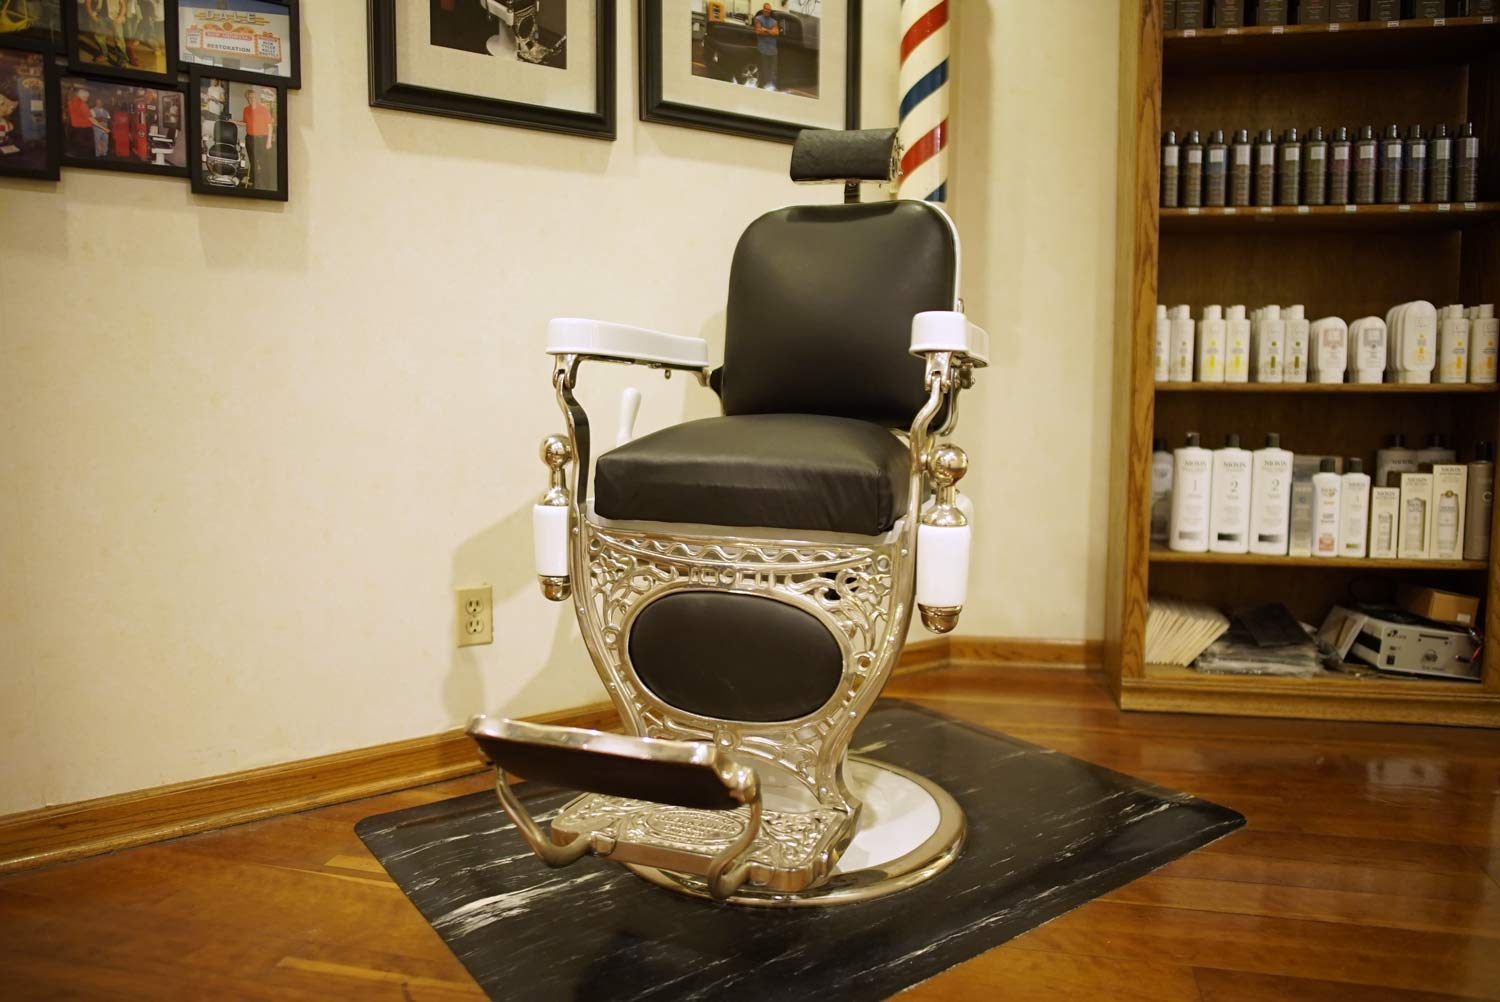 This is the original barber chair that started it all.